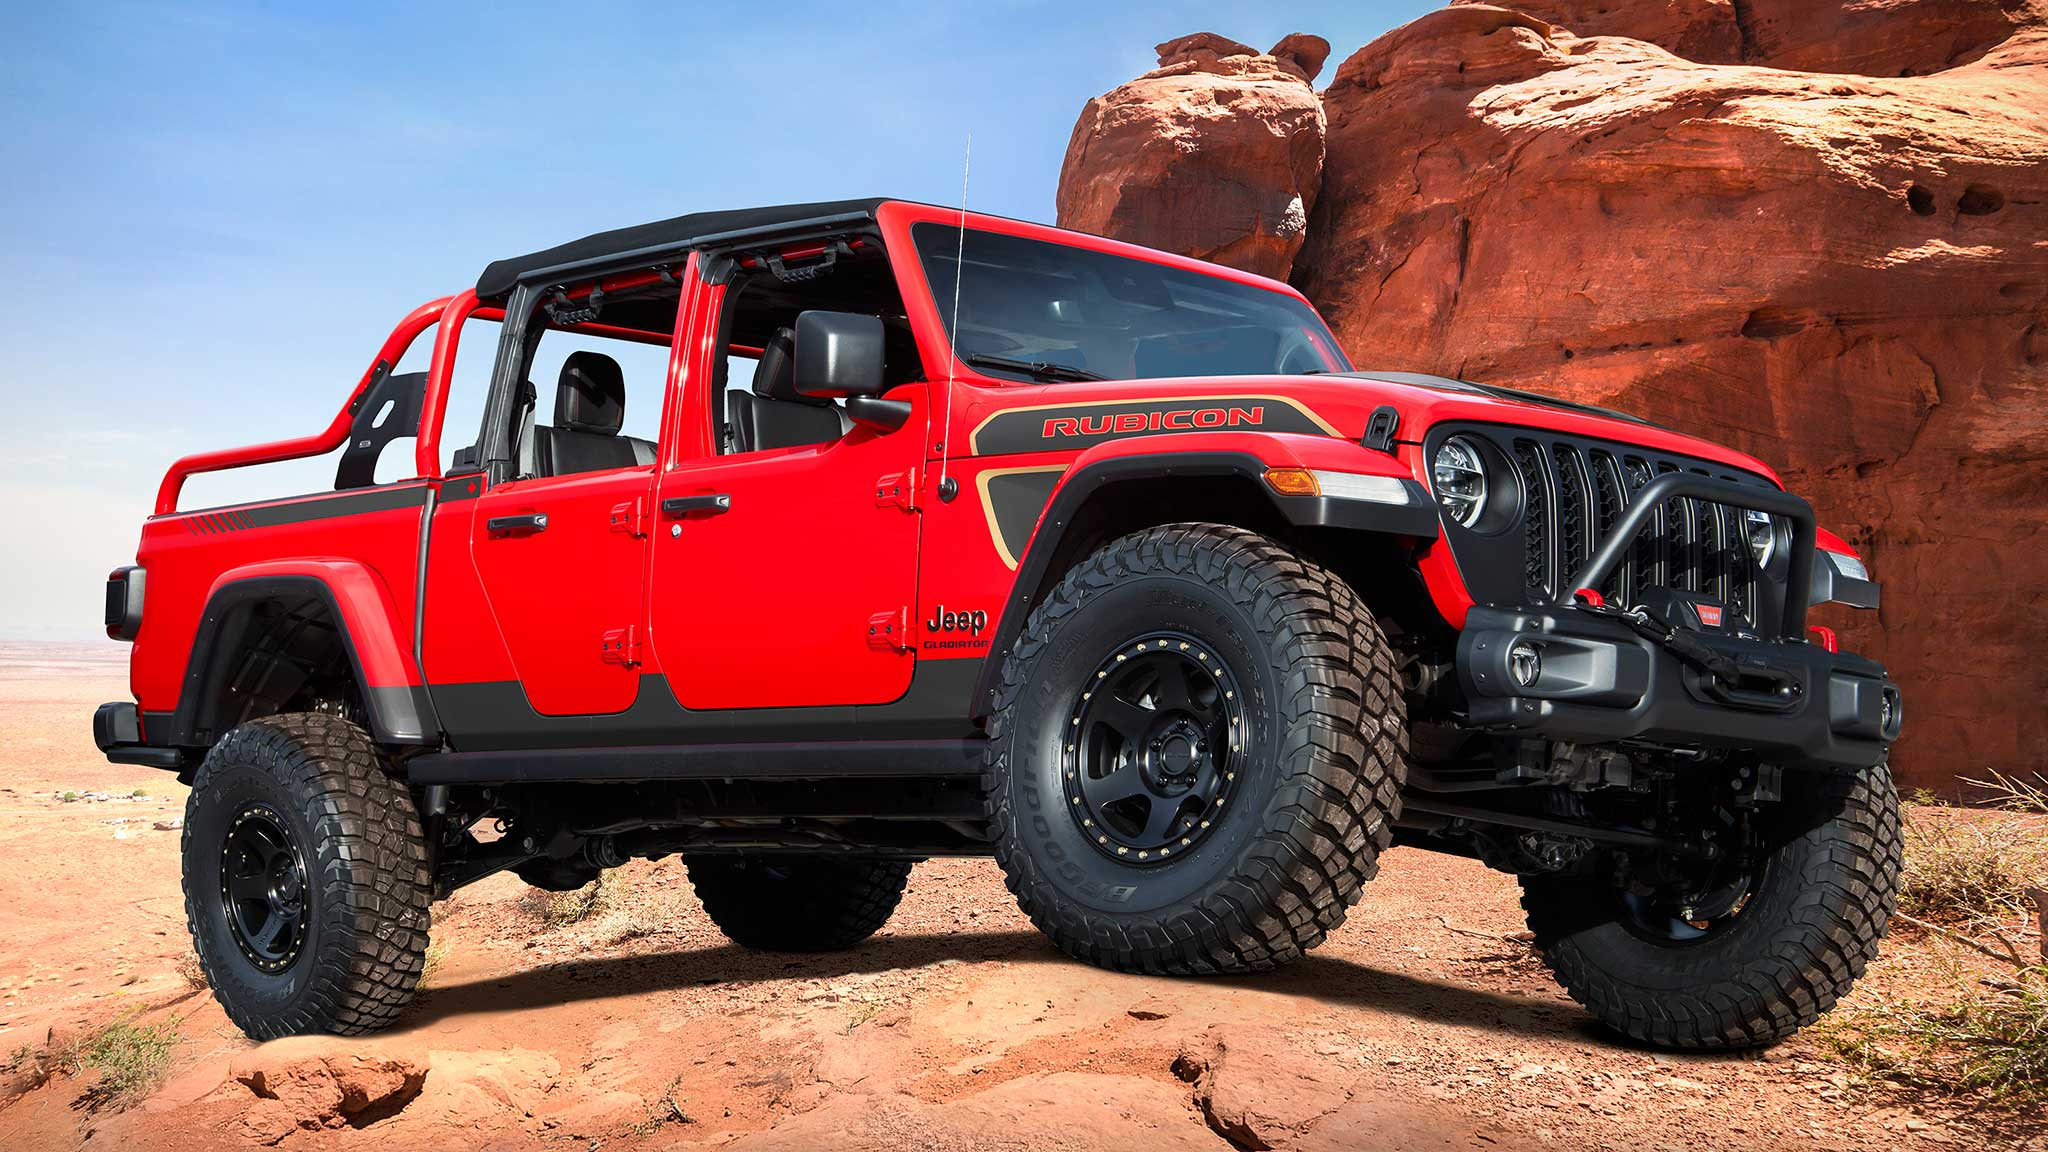 Jeep Gladiator Red Bare Concept